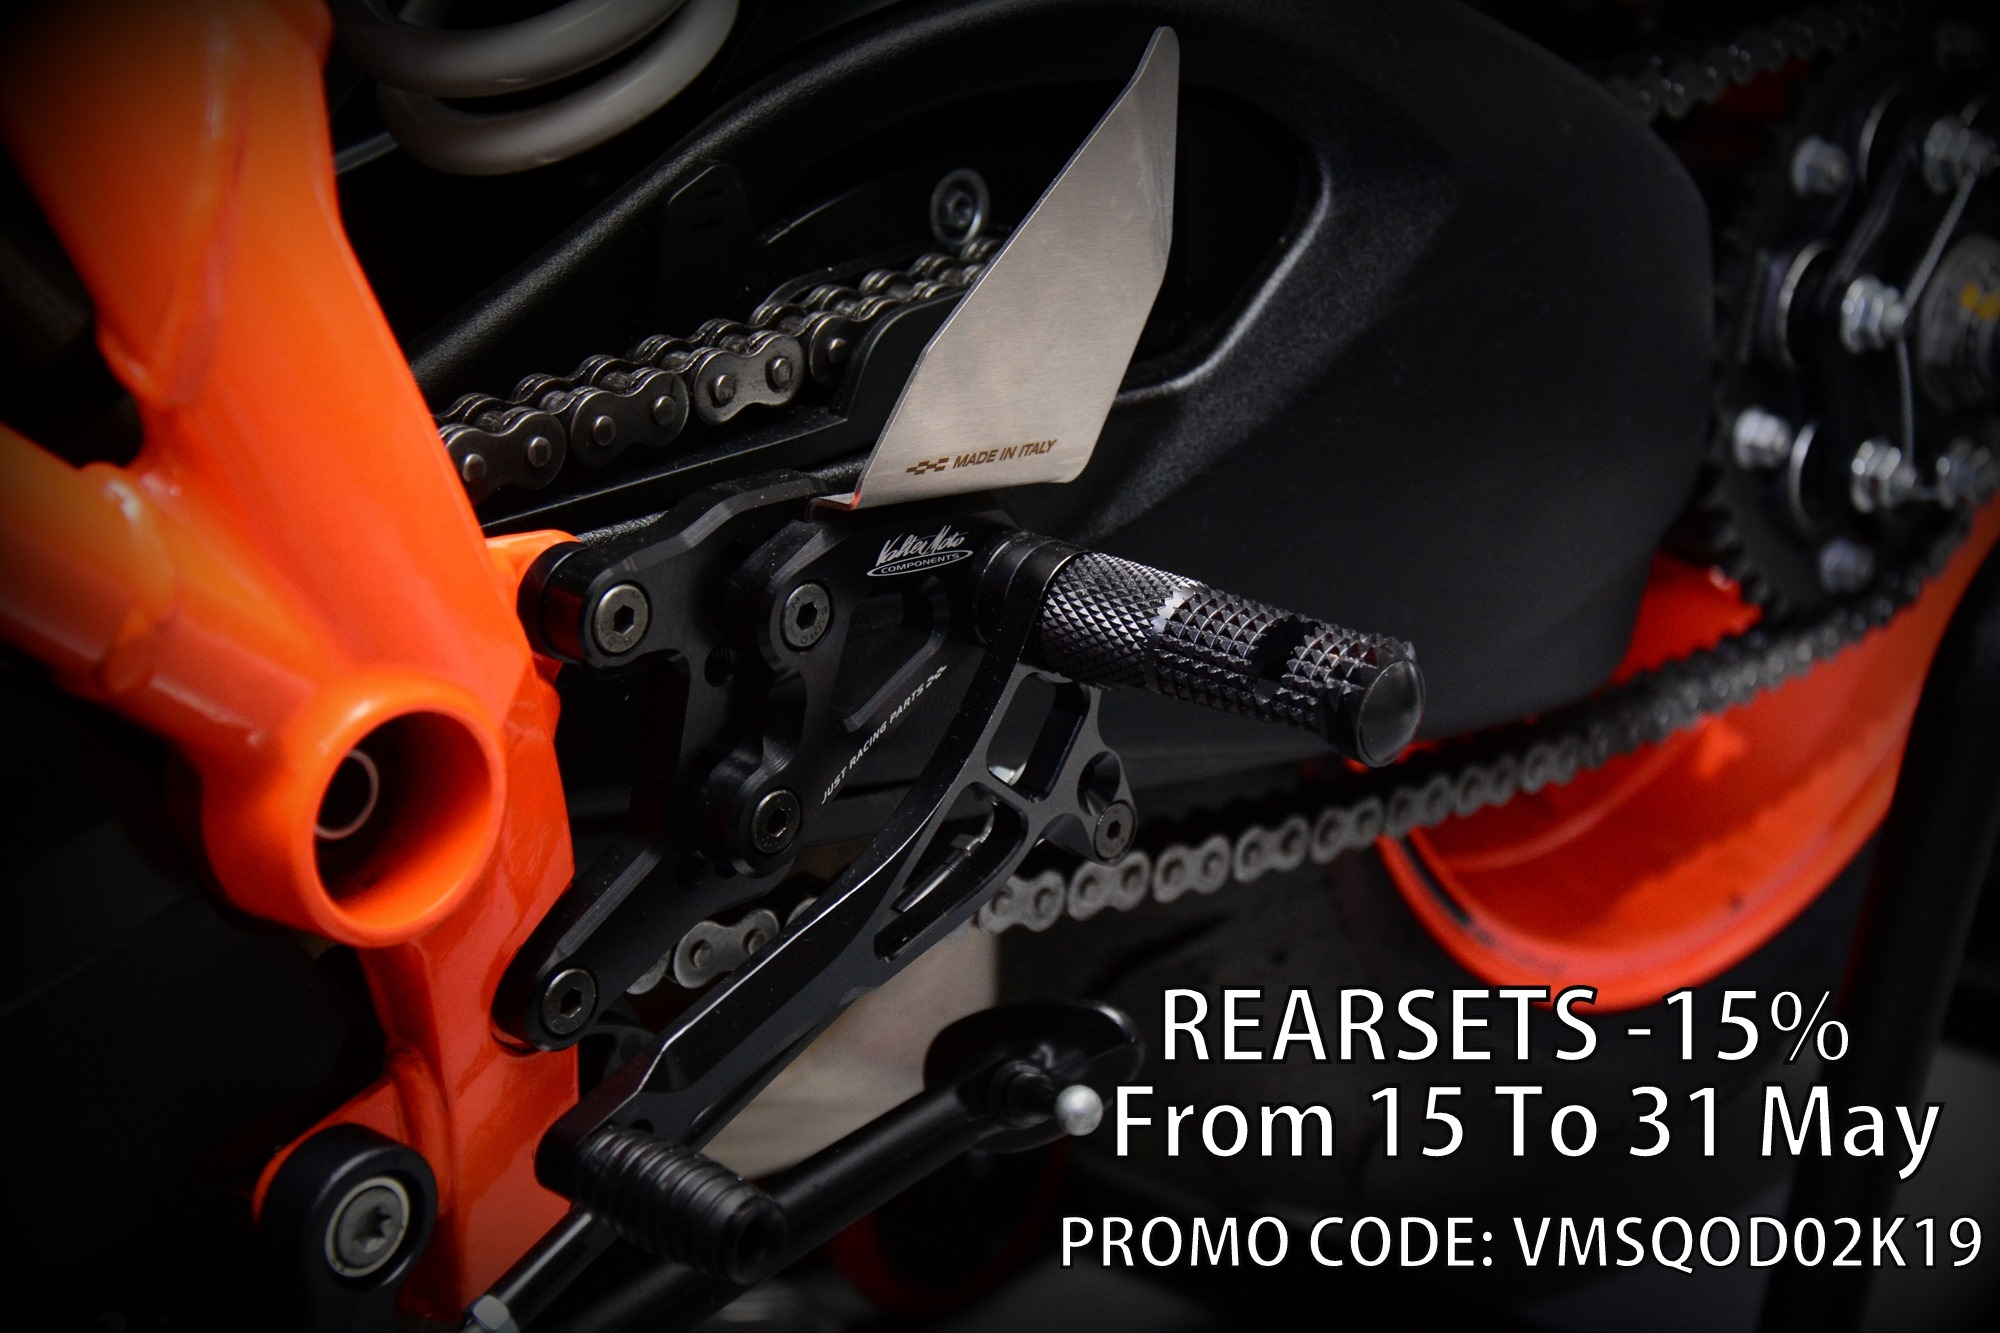 Rearset promo 15%off